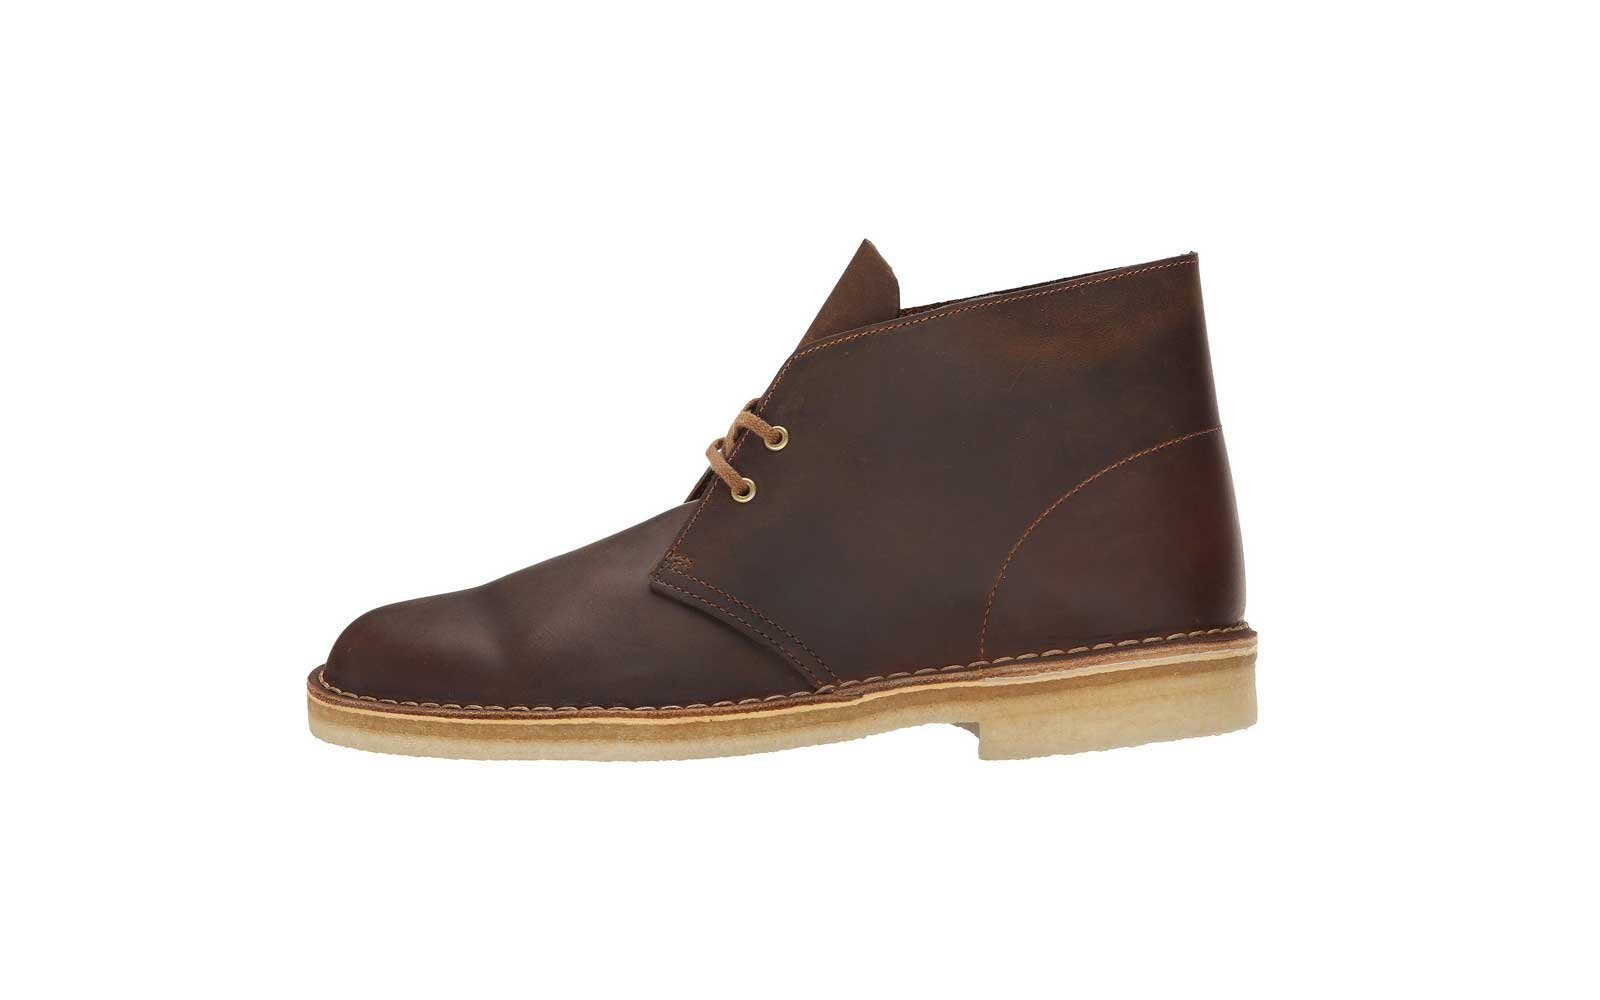 clarks mens boots fashion